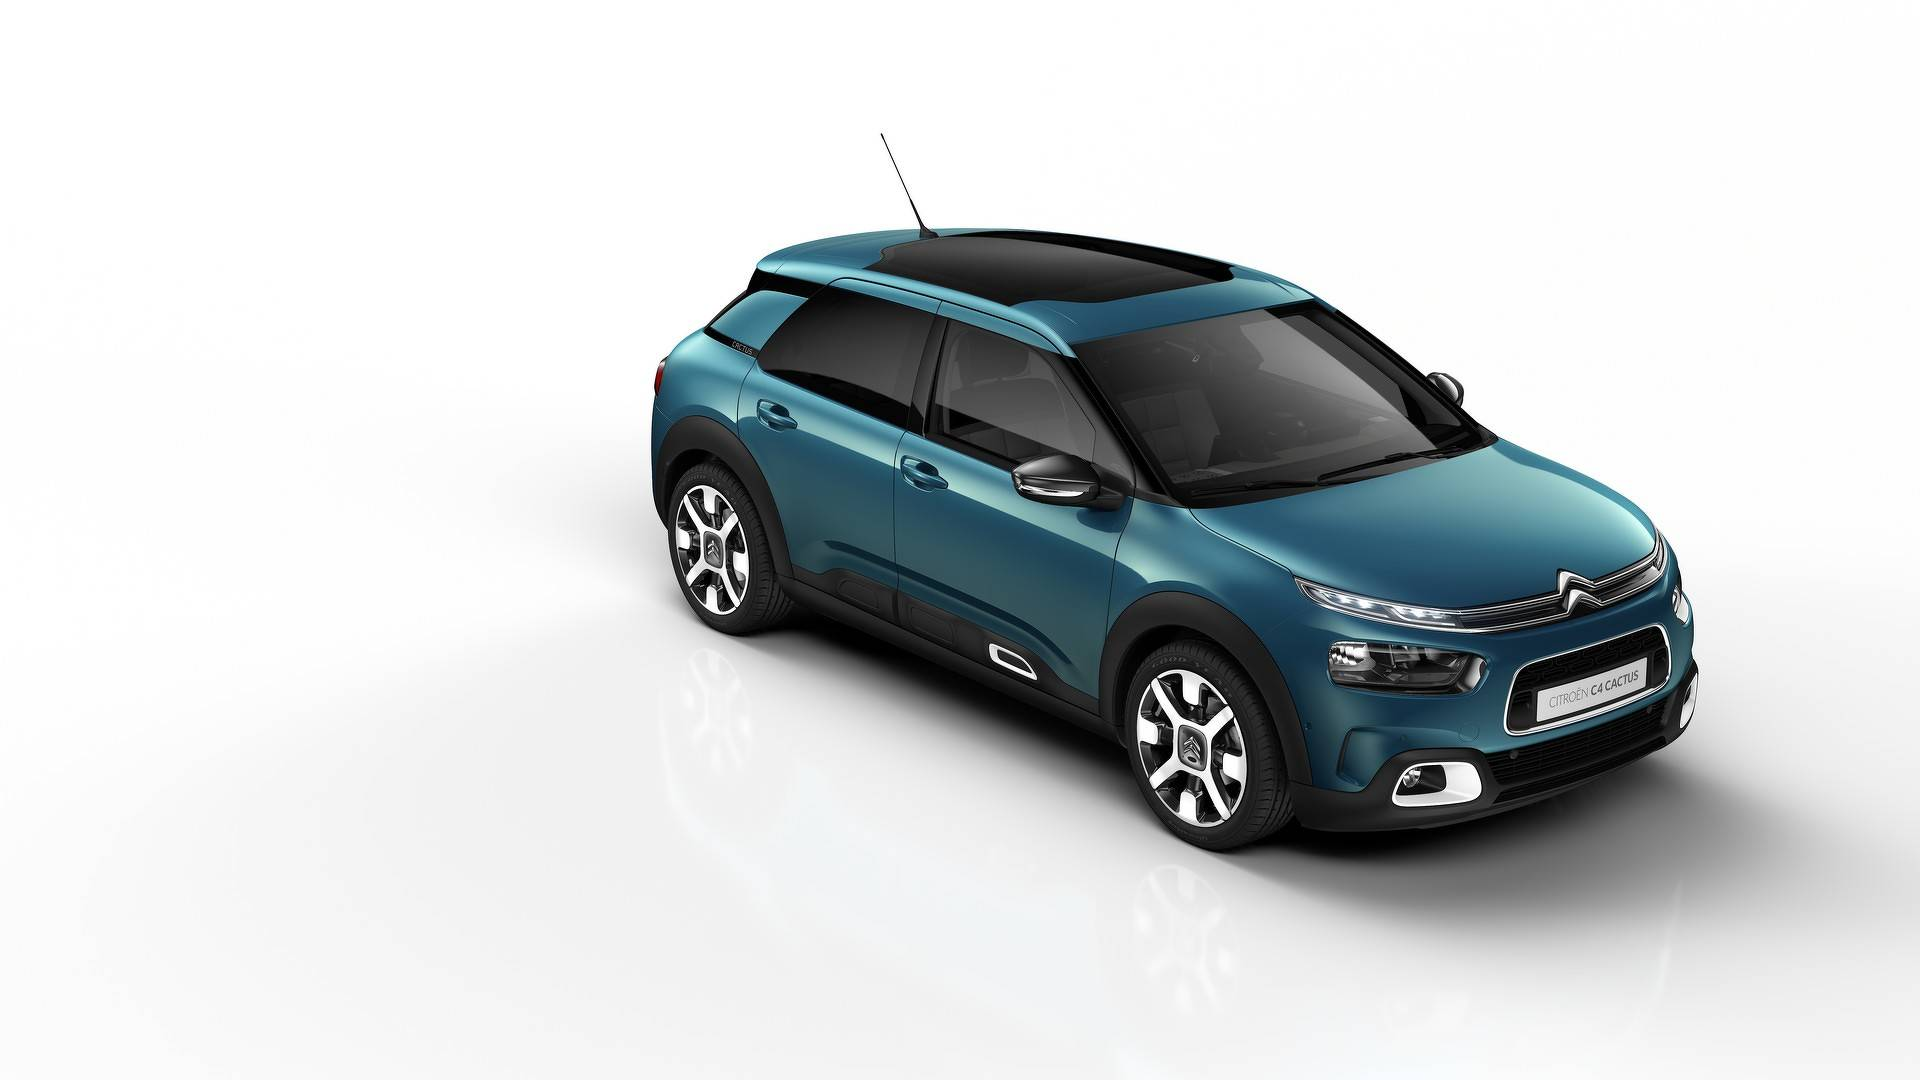 citroen c4 cactus 2018 dojrzalszy project automotive. Black Bedroom Furniture Sets. Home Design Ideas